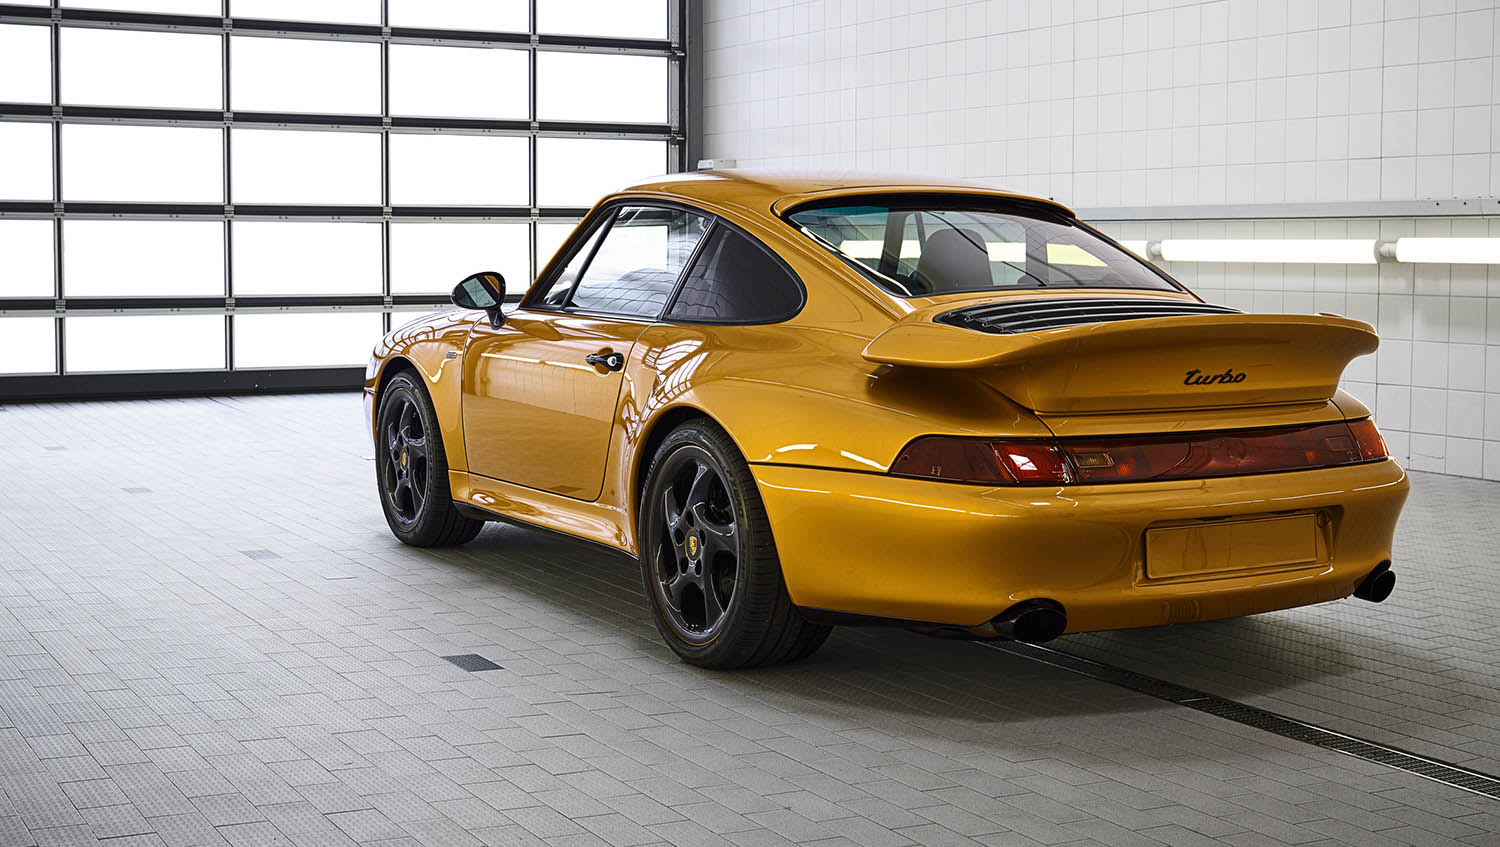 2018-Porsche-911-Turbo--Classic-Series-Project-Gold-_1.jpg